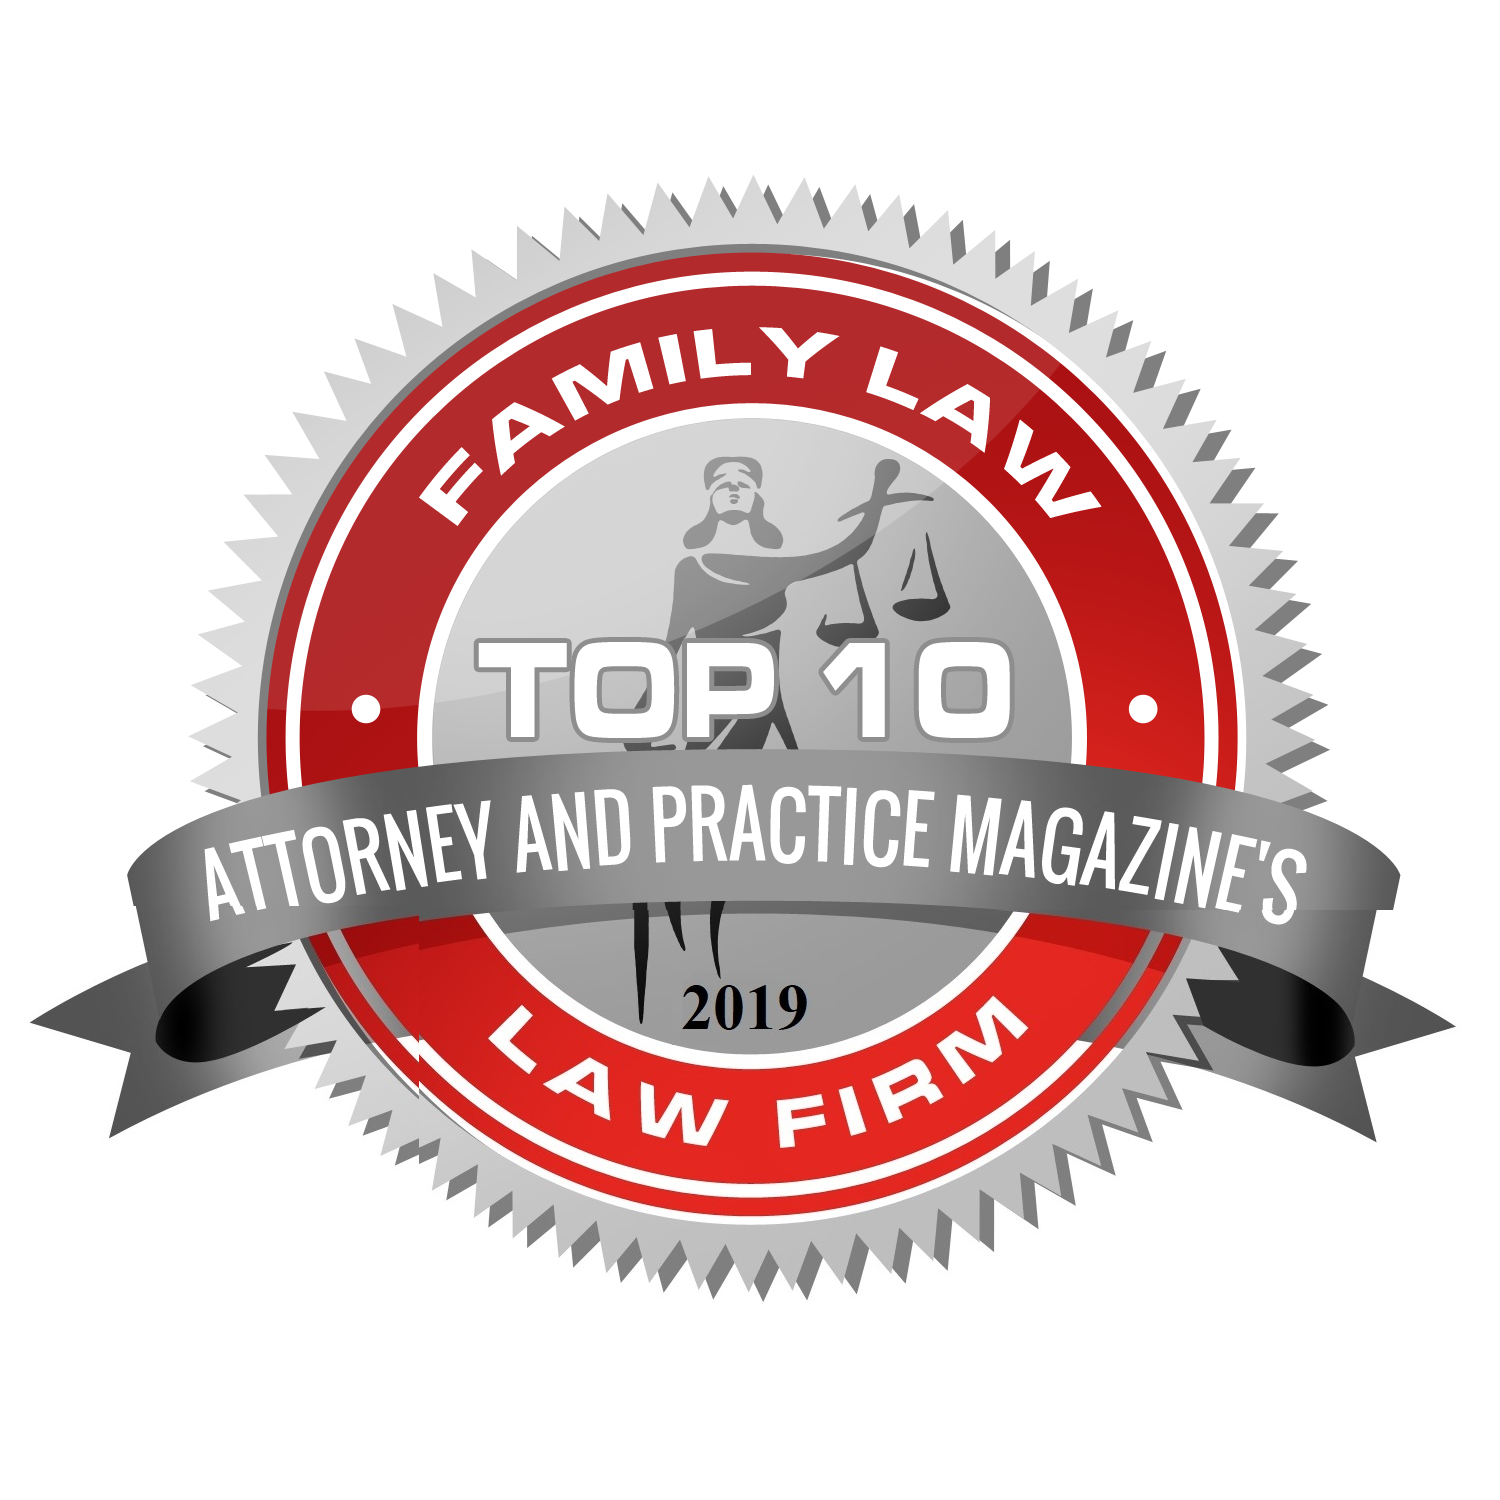 Attorney and Practice Magazine - 2019 Top 10 Family Law Law Firm